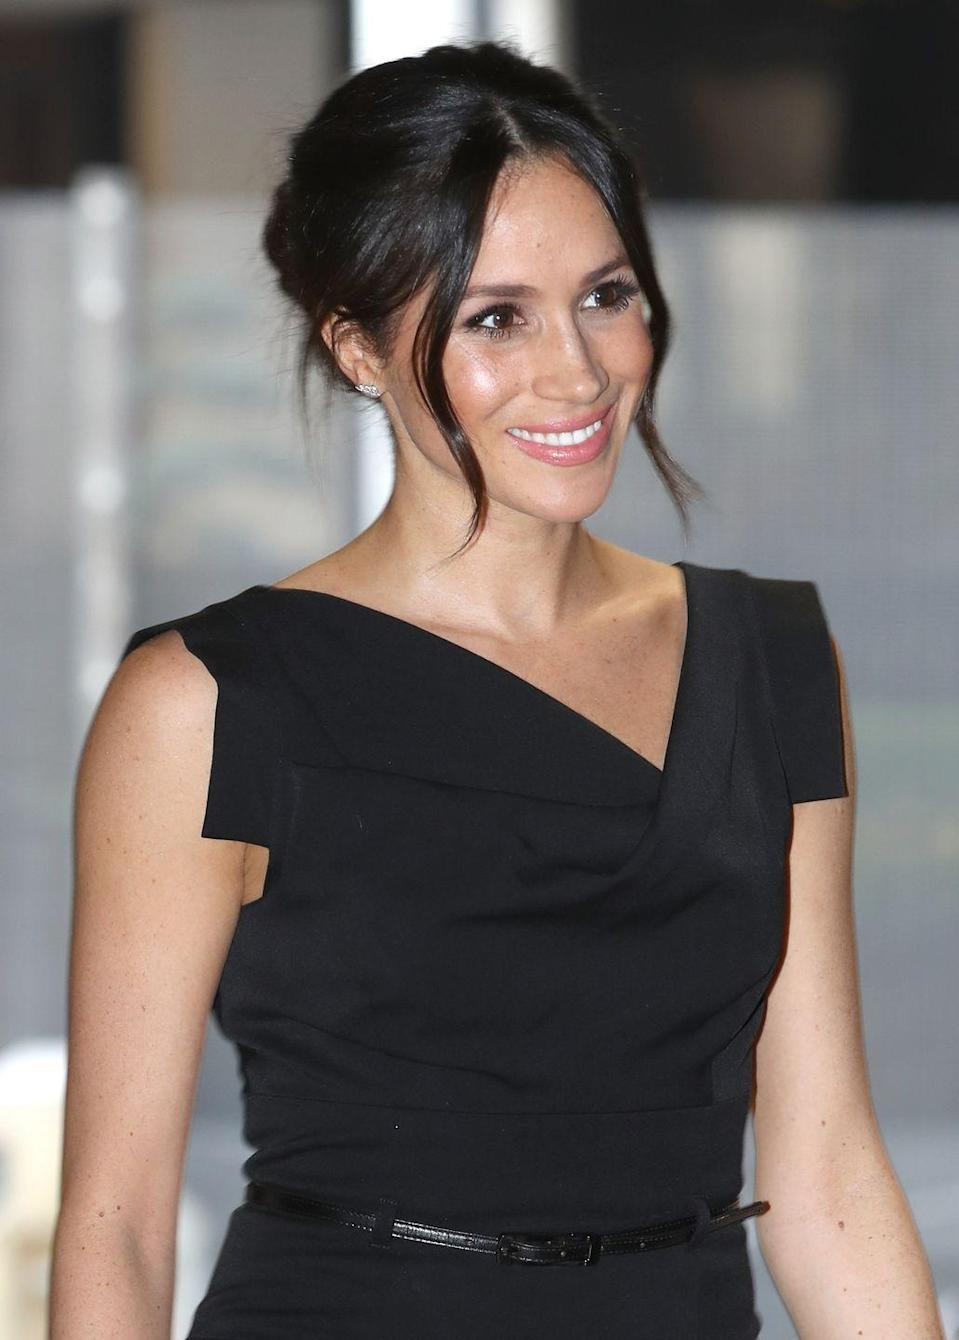 """<p><strong>Real name: </strong>Rachel Meghan Markle<br></p><p>These days, she's formally known as Meghan, Duchess of Sussex, but when she picked up acting she chose to <a href=""""https://www.gettyimages.com/detail/news-photo/meghan-markle-attends-the-womens-empowerment-reception-news-photo/948751448?adppopup=true"""" rel=""""nofollow noopener"""" target=""""_blank"""" data-ylk=""""slk:go by her middle name"""" class=""""link rapid-noclick-resp"""">go by her middle name</a>. Funny how Rachel is her character's name on <em>Suits</em>, right? </p>"""